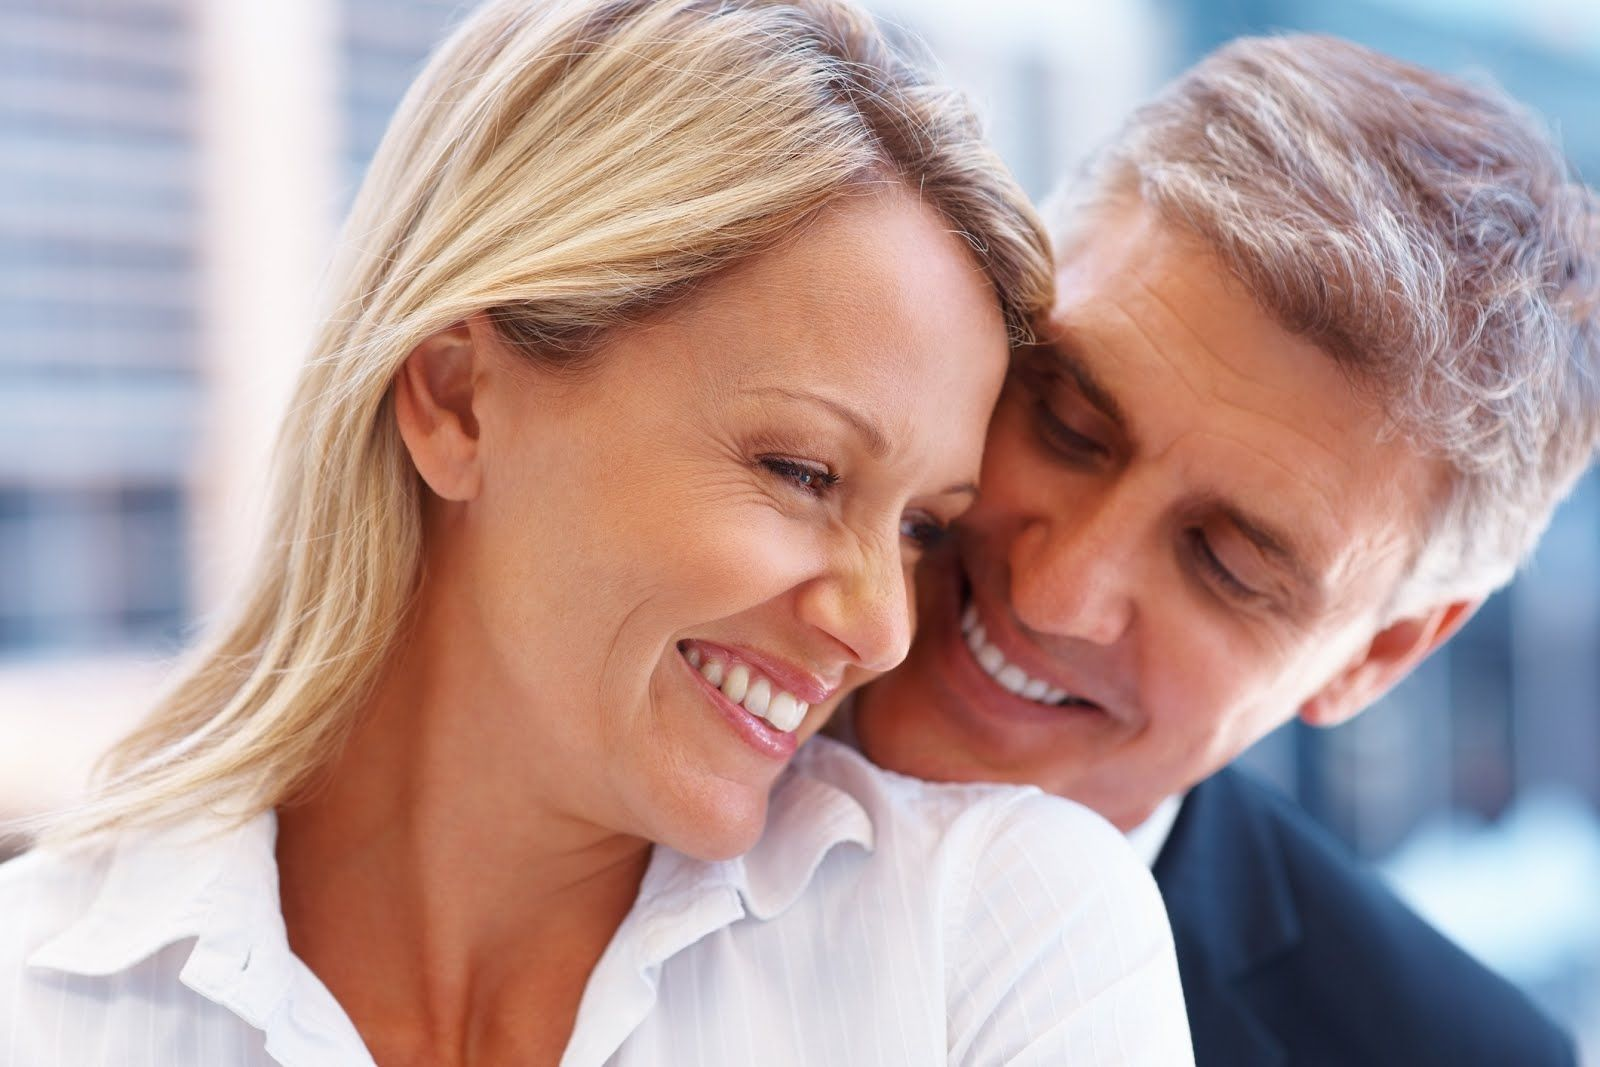 dating website for over 40s